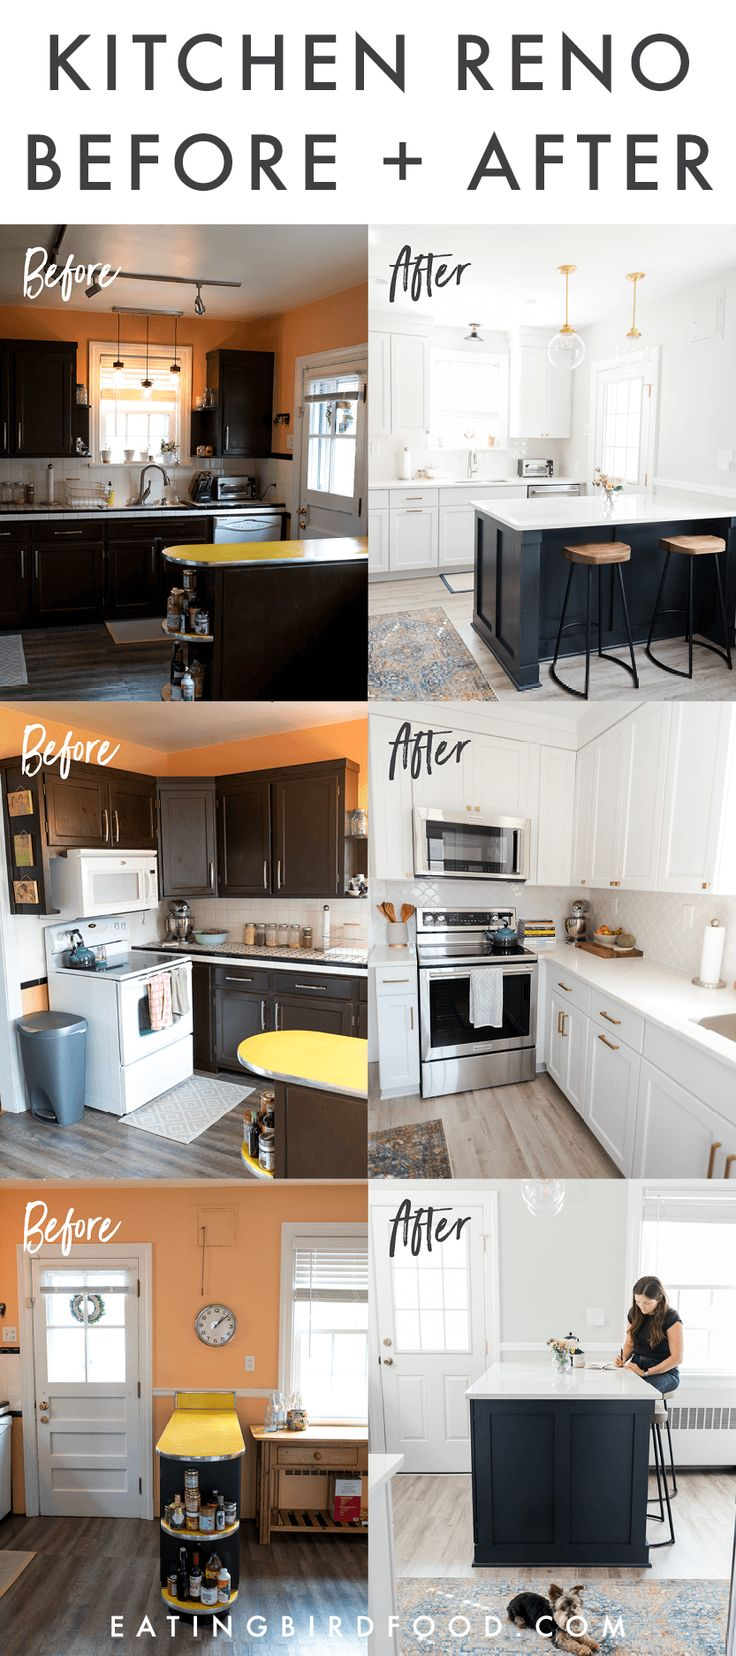 Our Kitchen Before After: The Reveal... Our Kitchen Renovation Is Complete And I'm